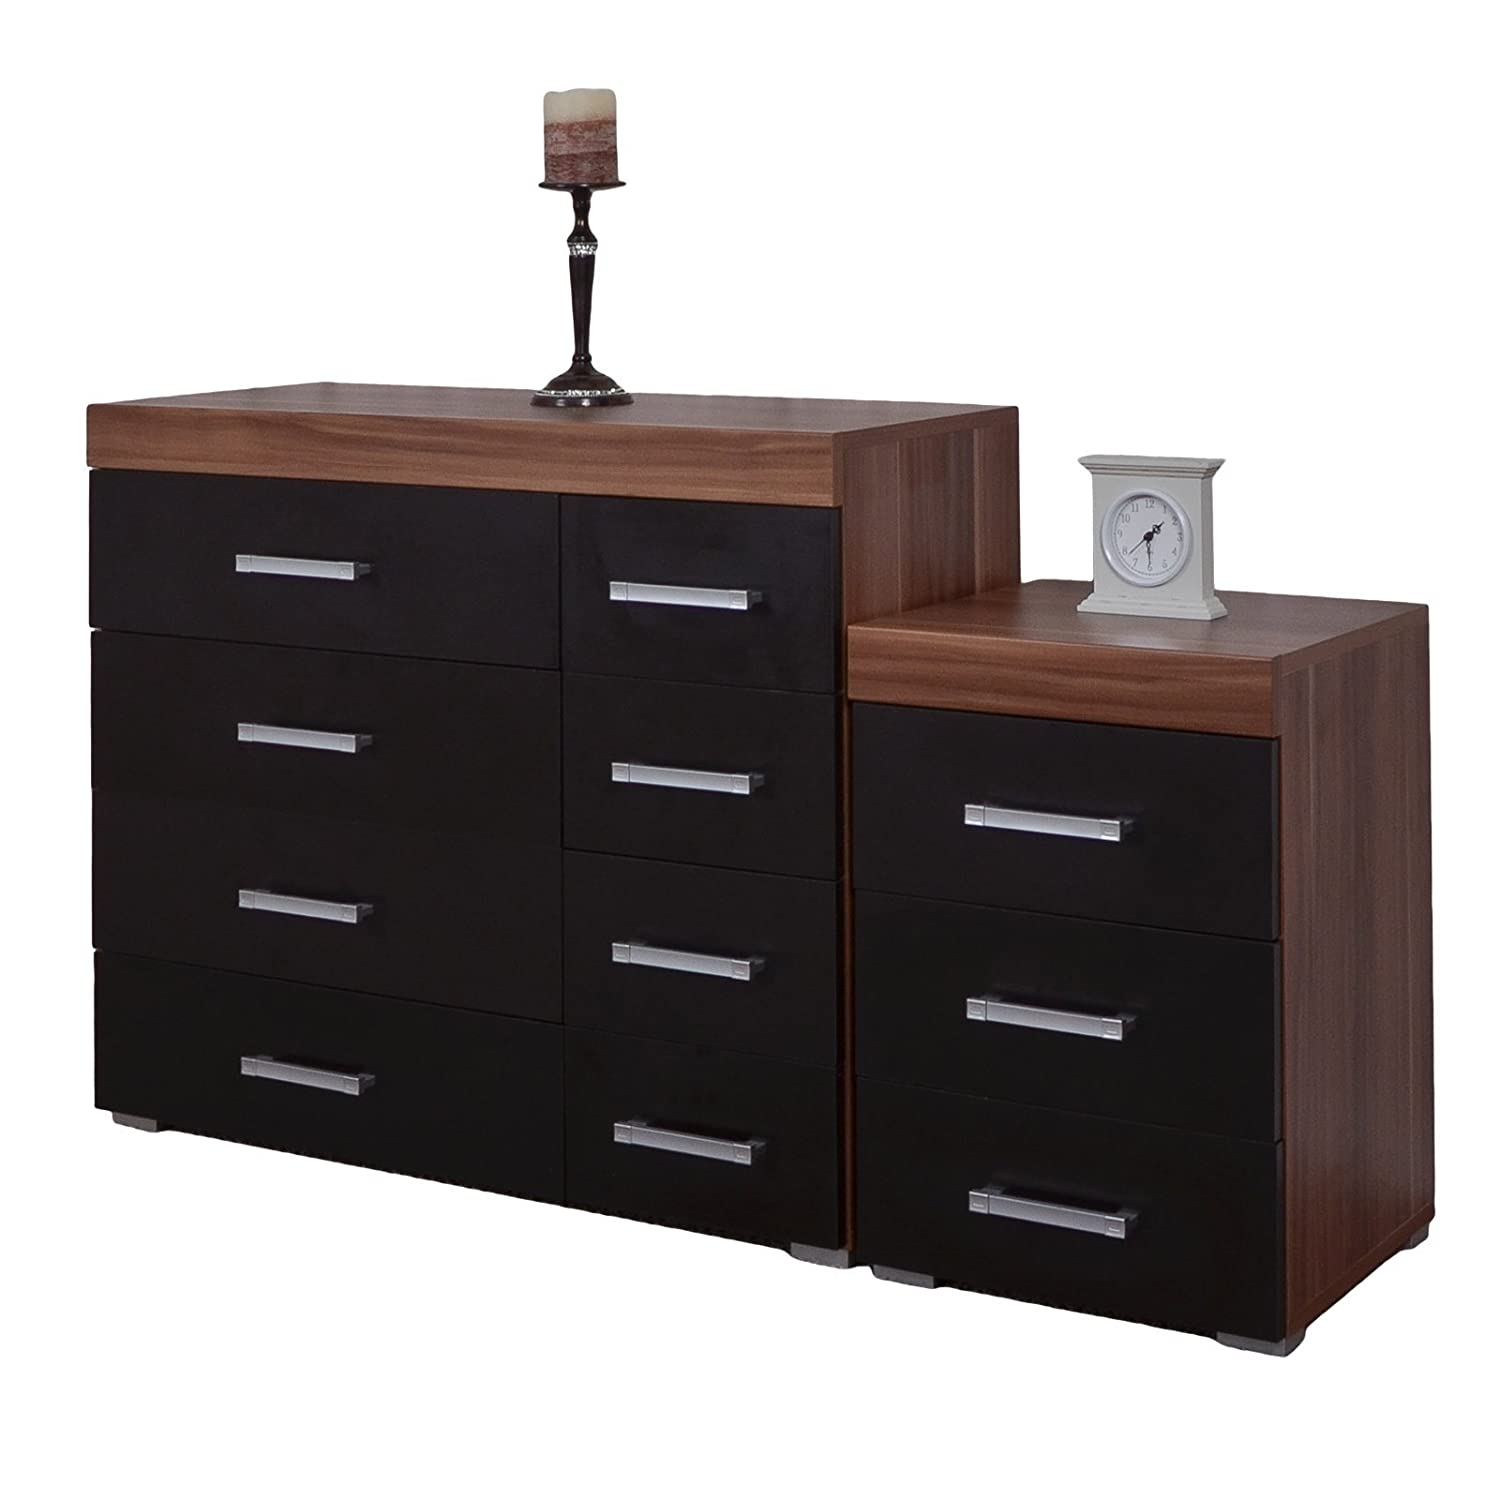 DP Black & Walnut 4+4 Drawer Chest & 3 Draw Bedside Cabinet Bedroom Furniture NEW